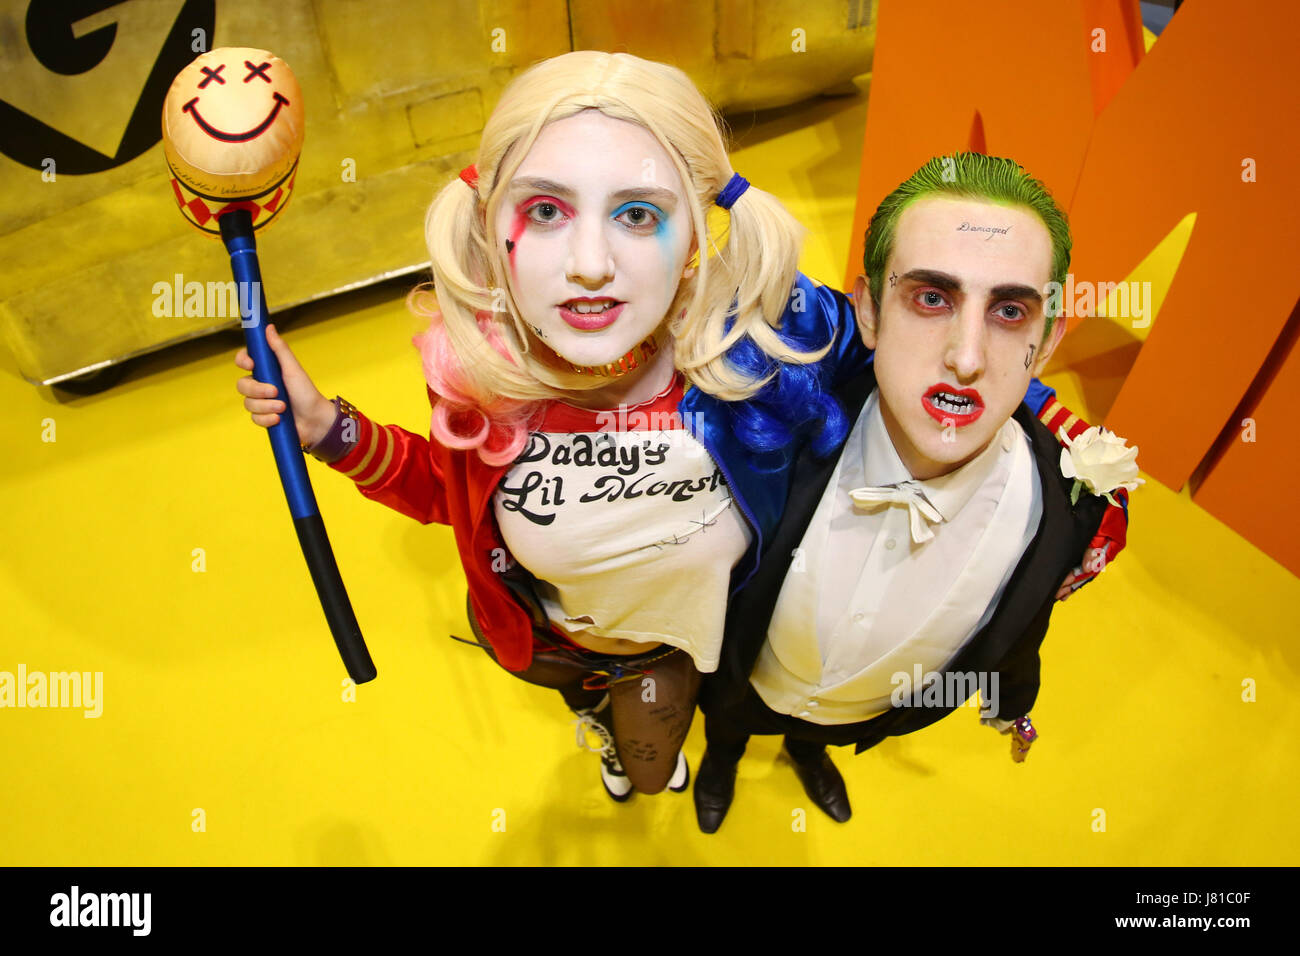 London, UK. 26th May 2017. Harley Quinn and the Joker from Suicide Squad at the opening day of MCM Comic Con at - Stock Image